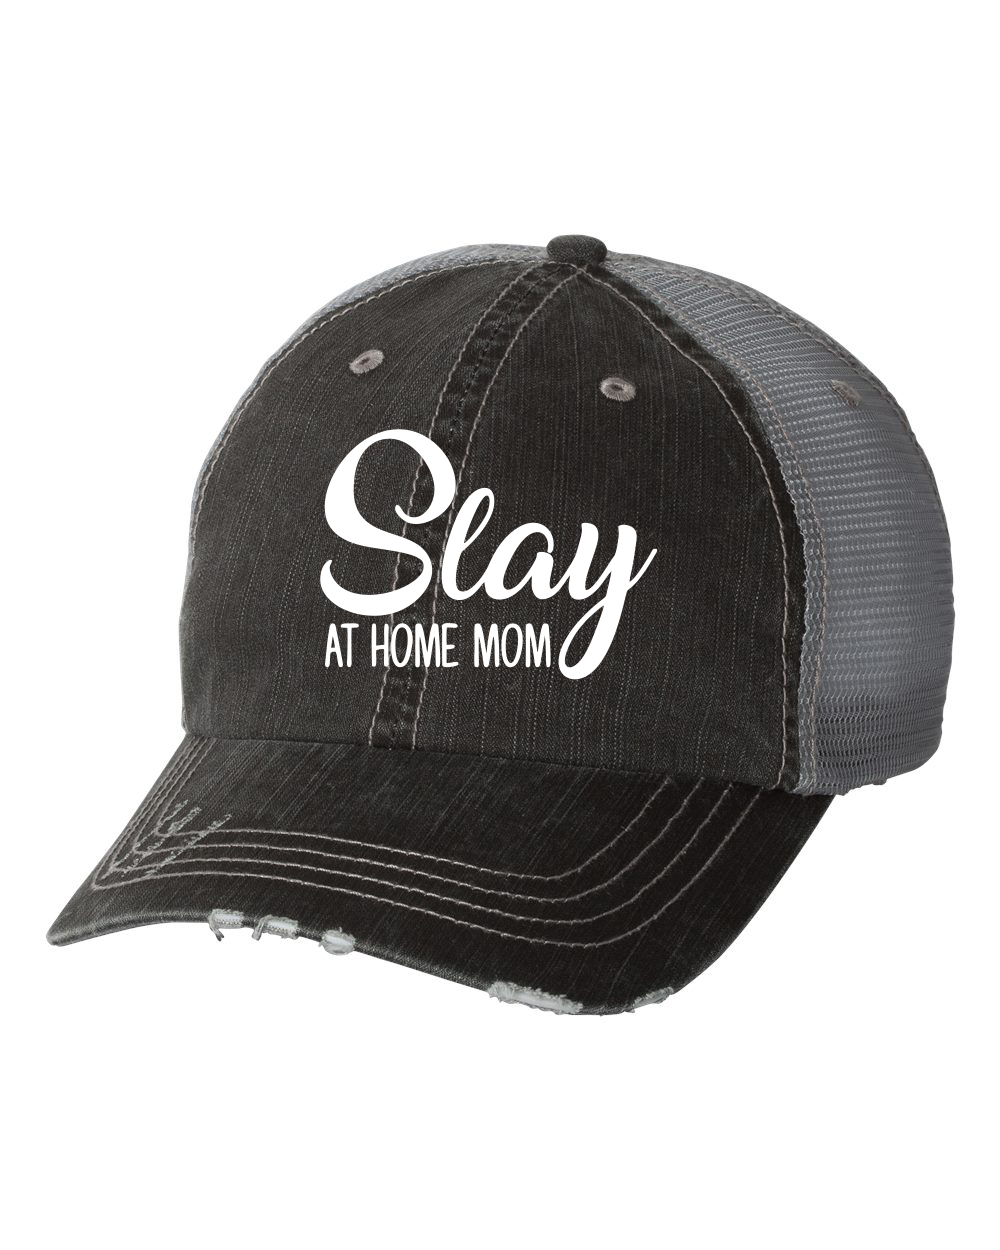 Slay at Home Mom Embroidered Trucker Hat - Ocean   7th bad10a72f67